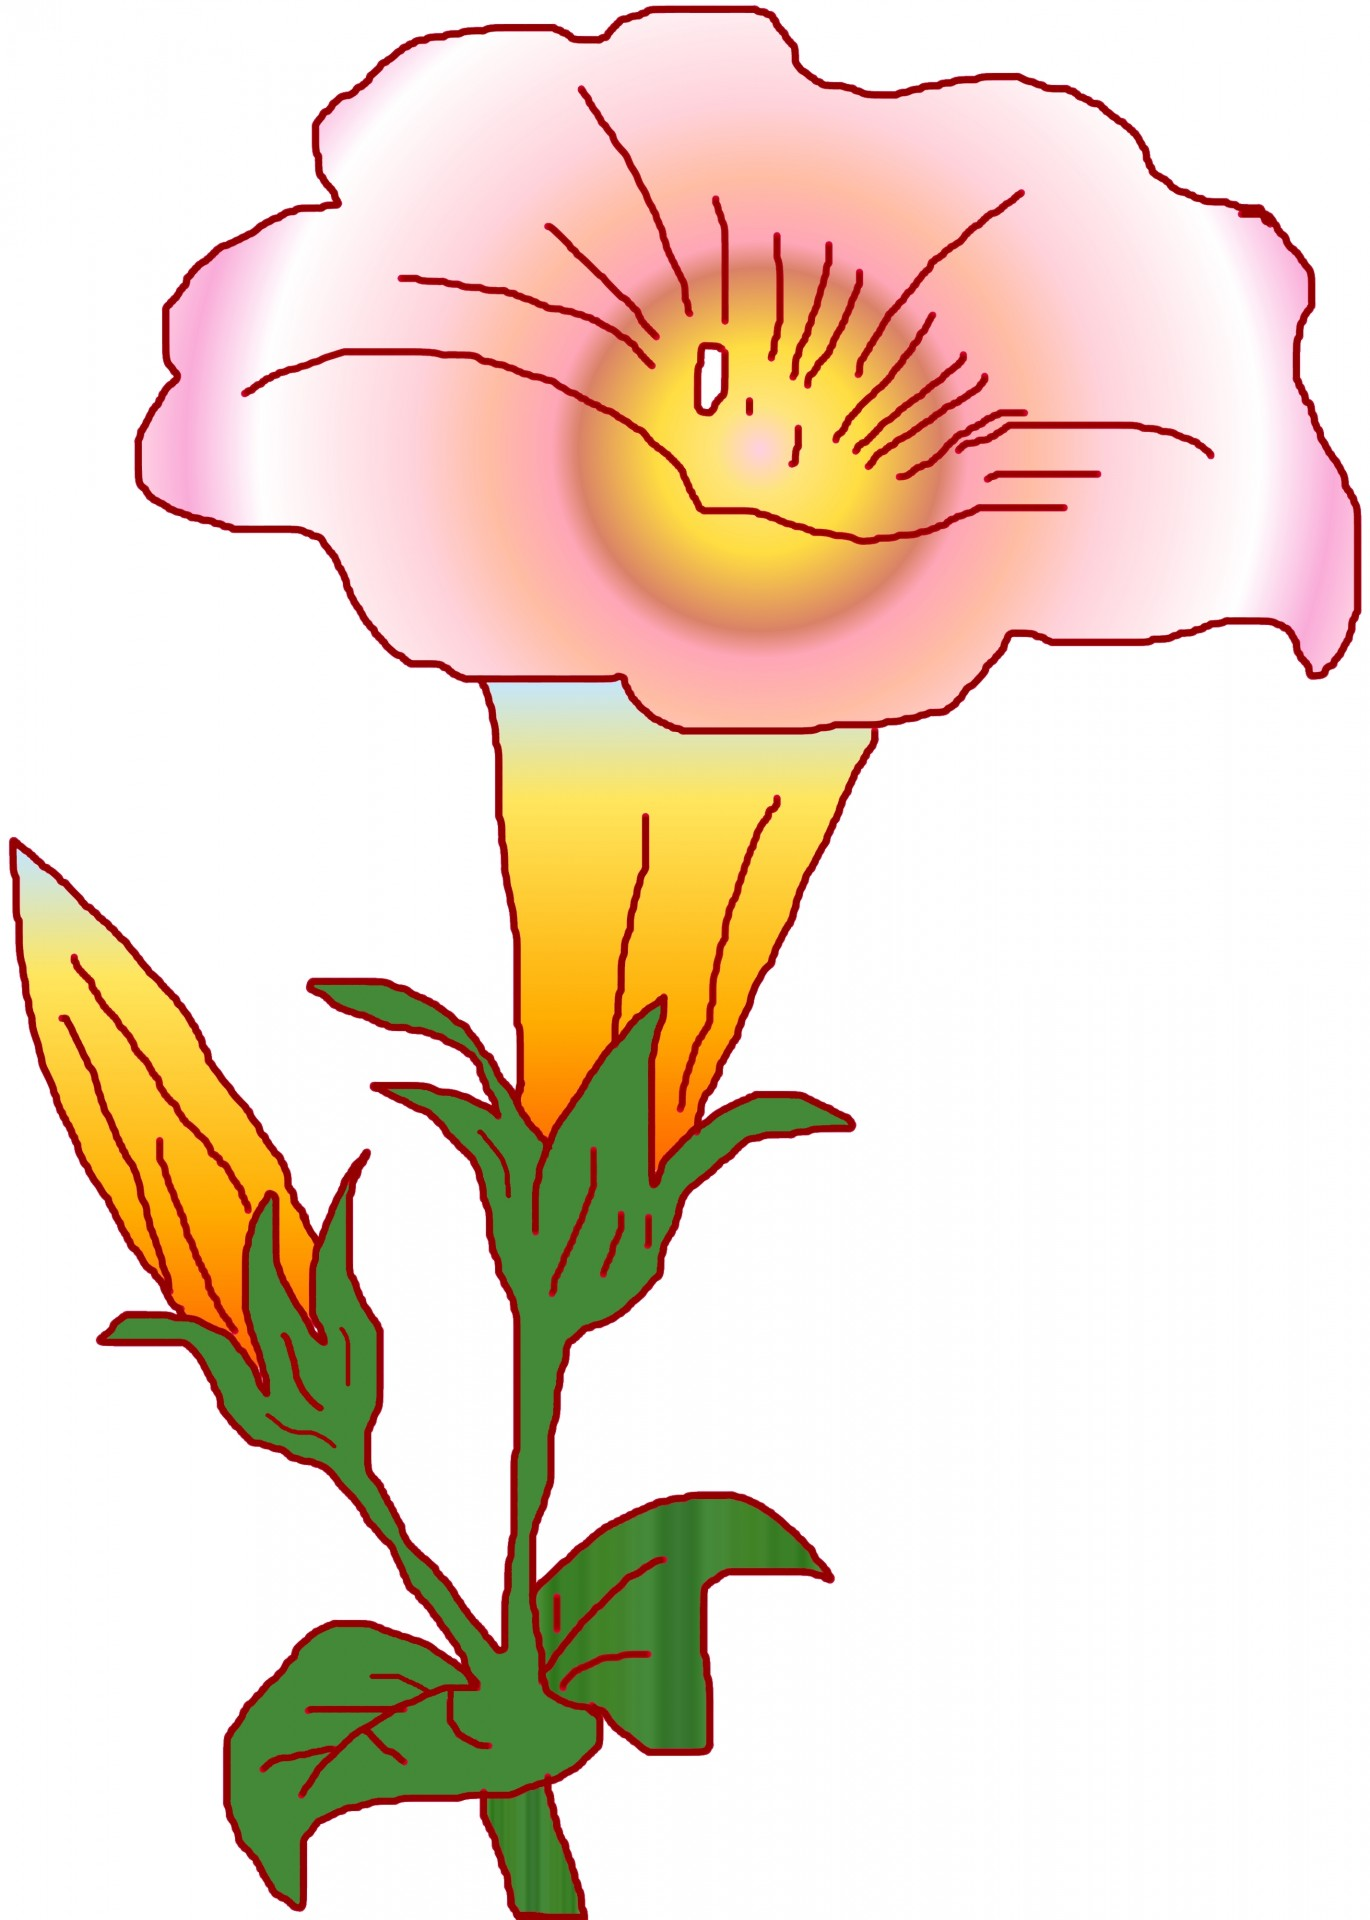 1370x1920 Doodle, Drawing, Lily, Flower, Gradient